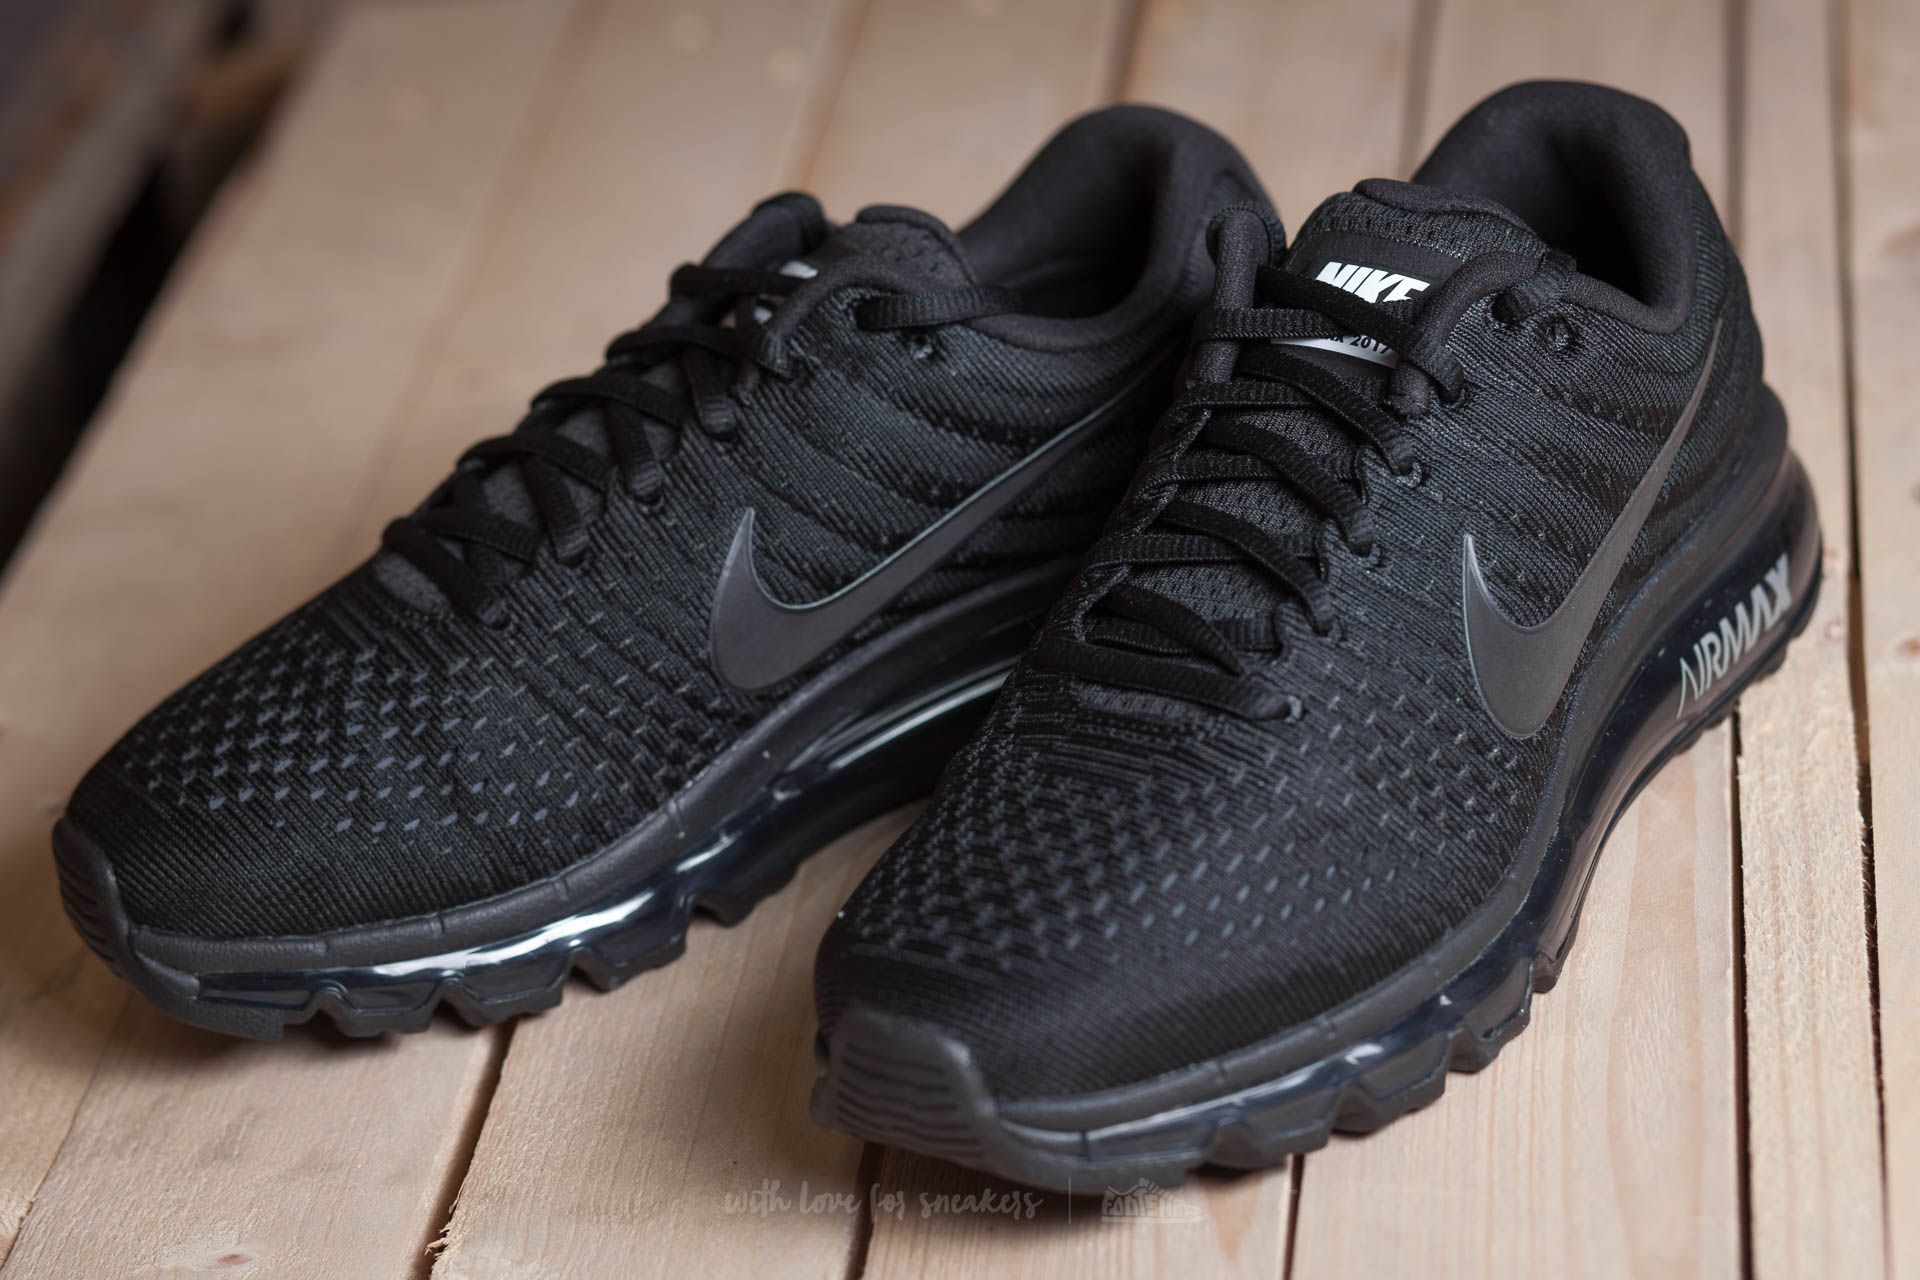 Nike Wmns Air Max 2017 Black  Black  Black at a great price 191 € e6cba225ee